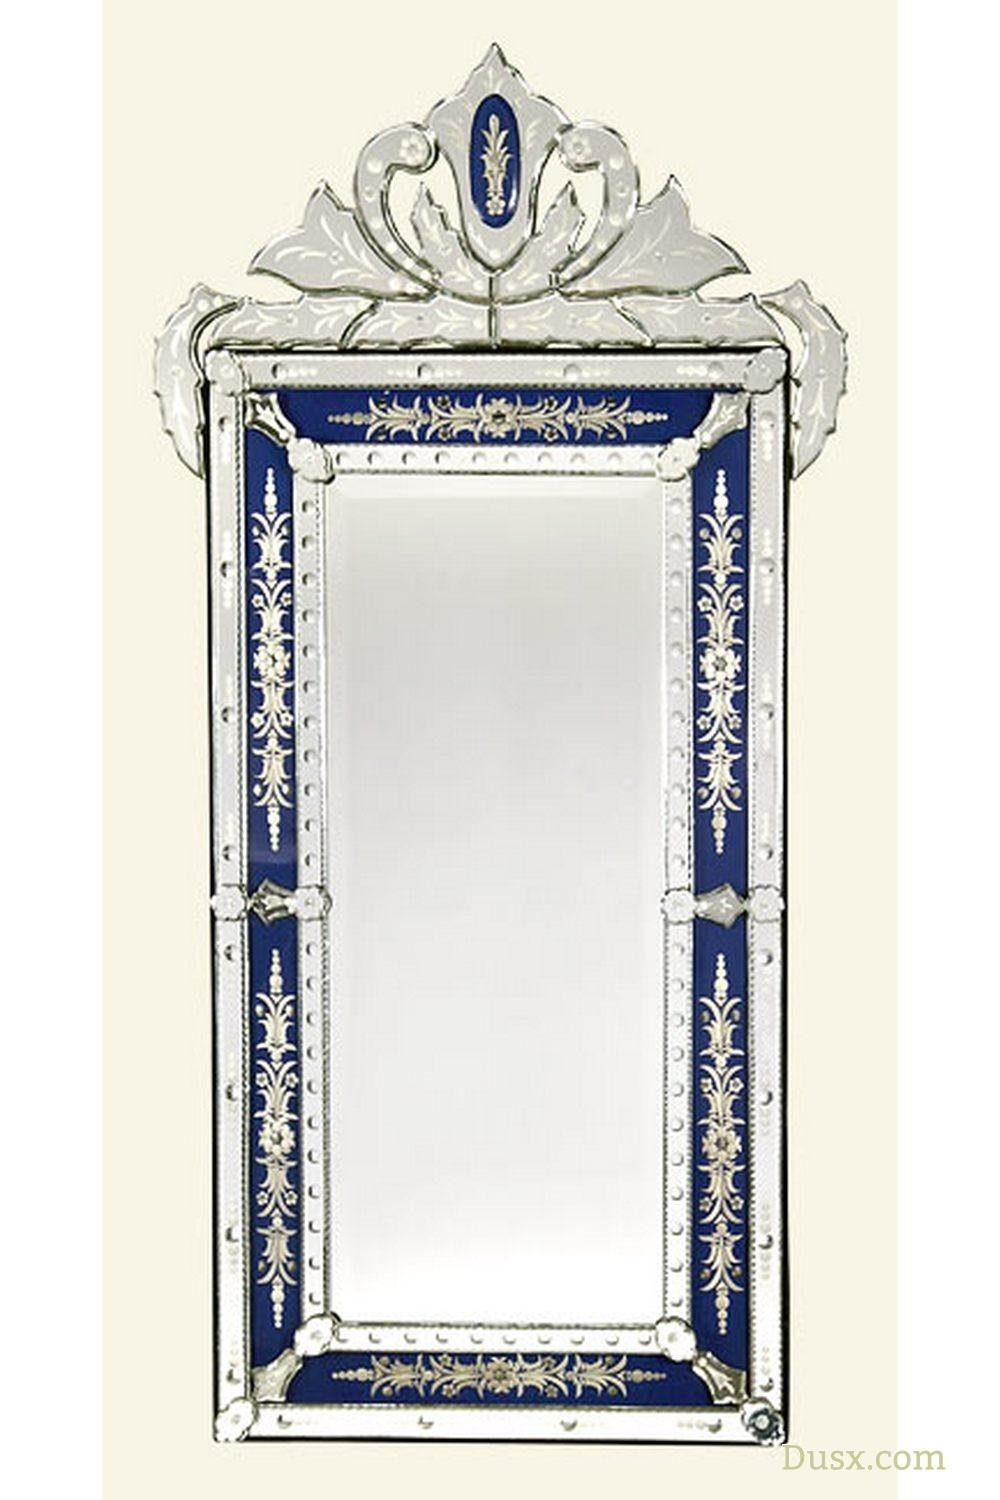 Vintage Venetian Antique Style Blue & Clear Etched Decorative Wall Pertaining To Venetian Mirrors Antique (View 13 of 20)